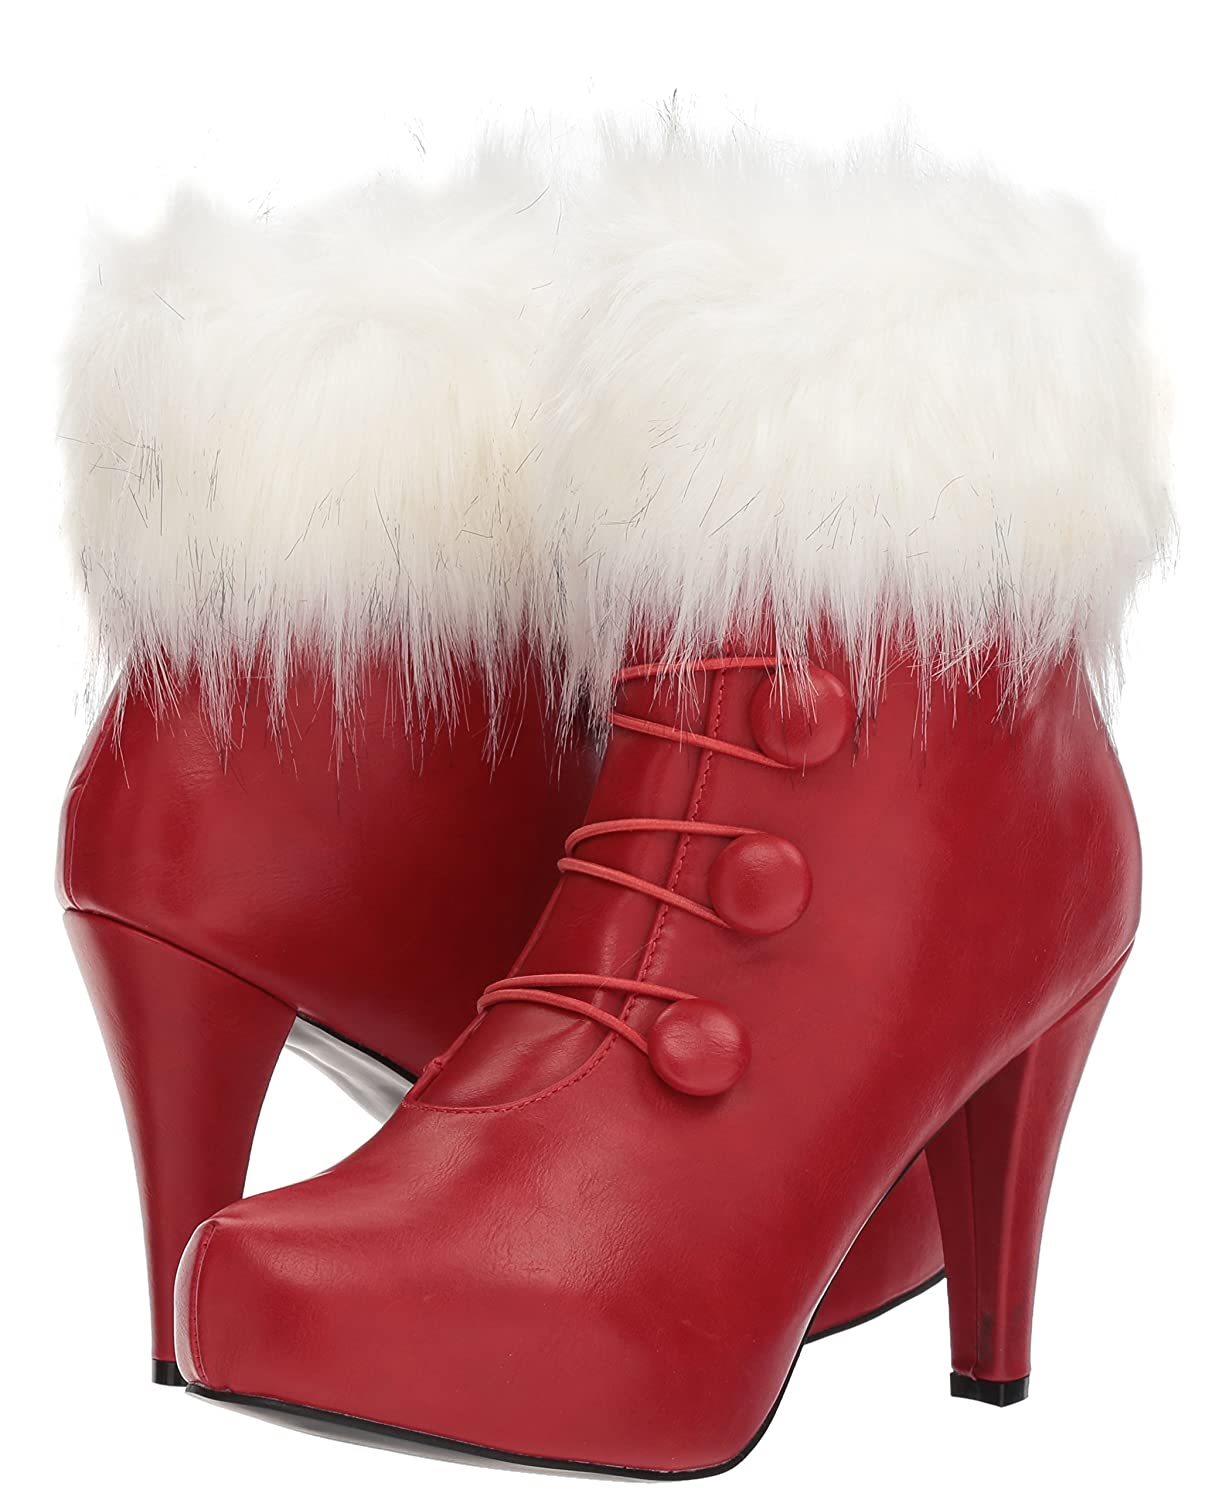 Women's Mrs. Claus White Fur Cuff Red Boots - DeluxeAdultCostumes.com